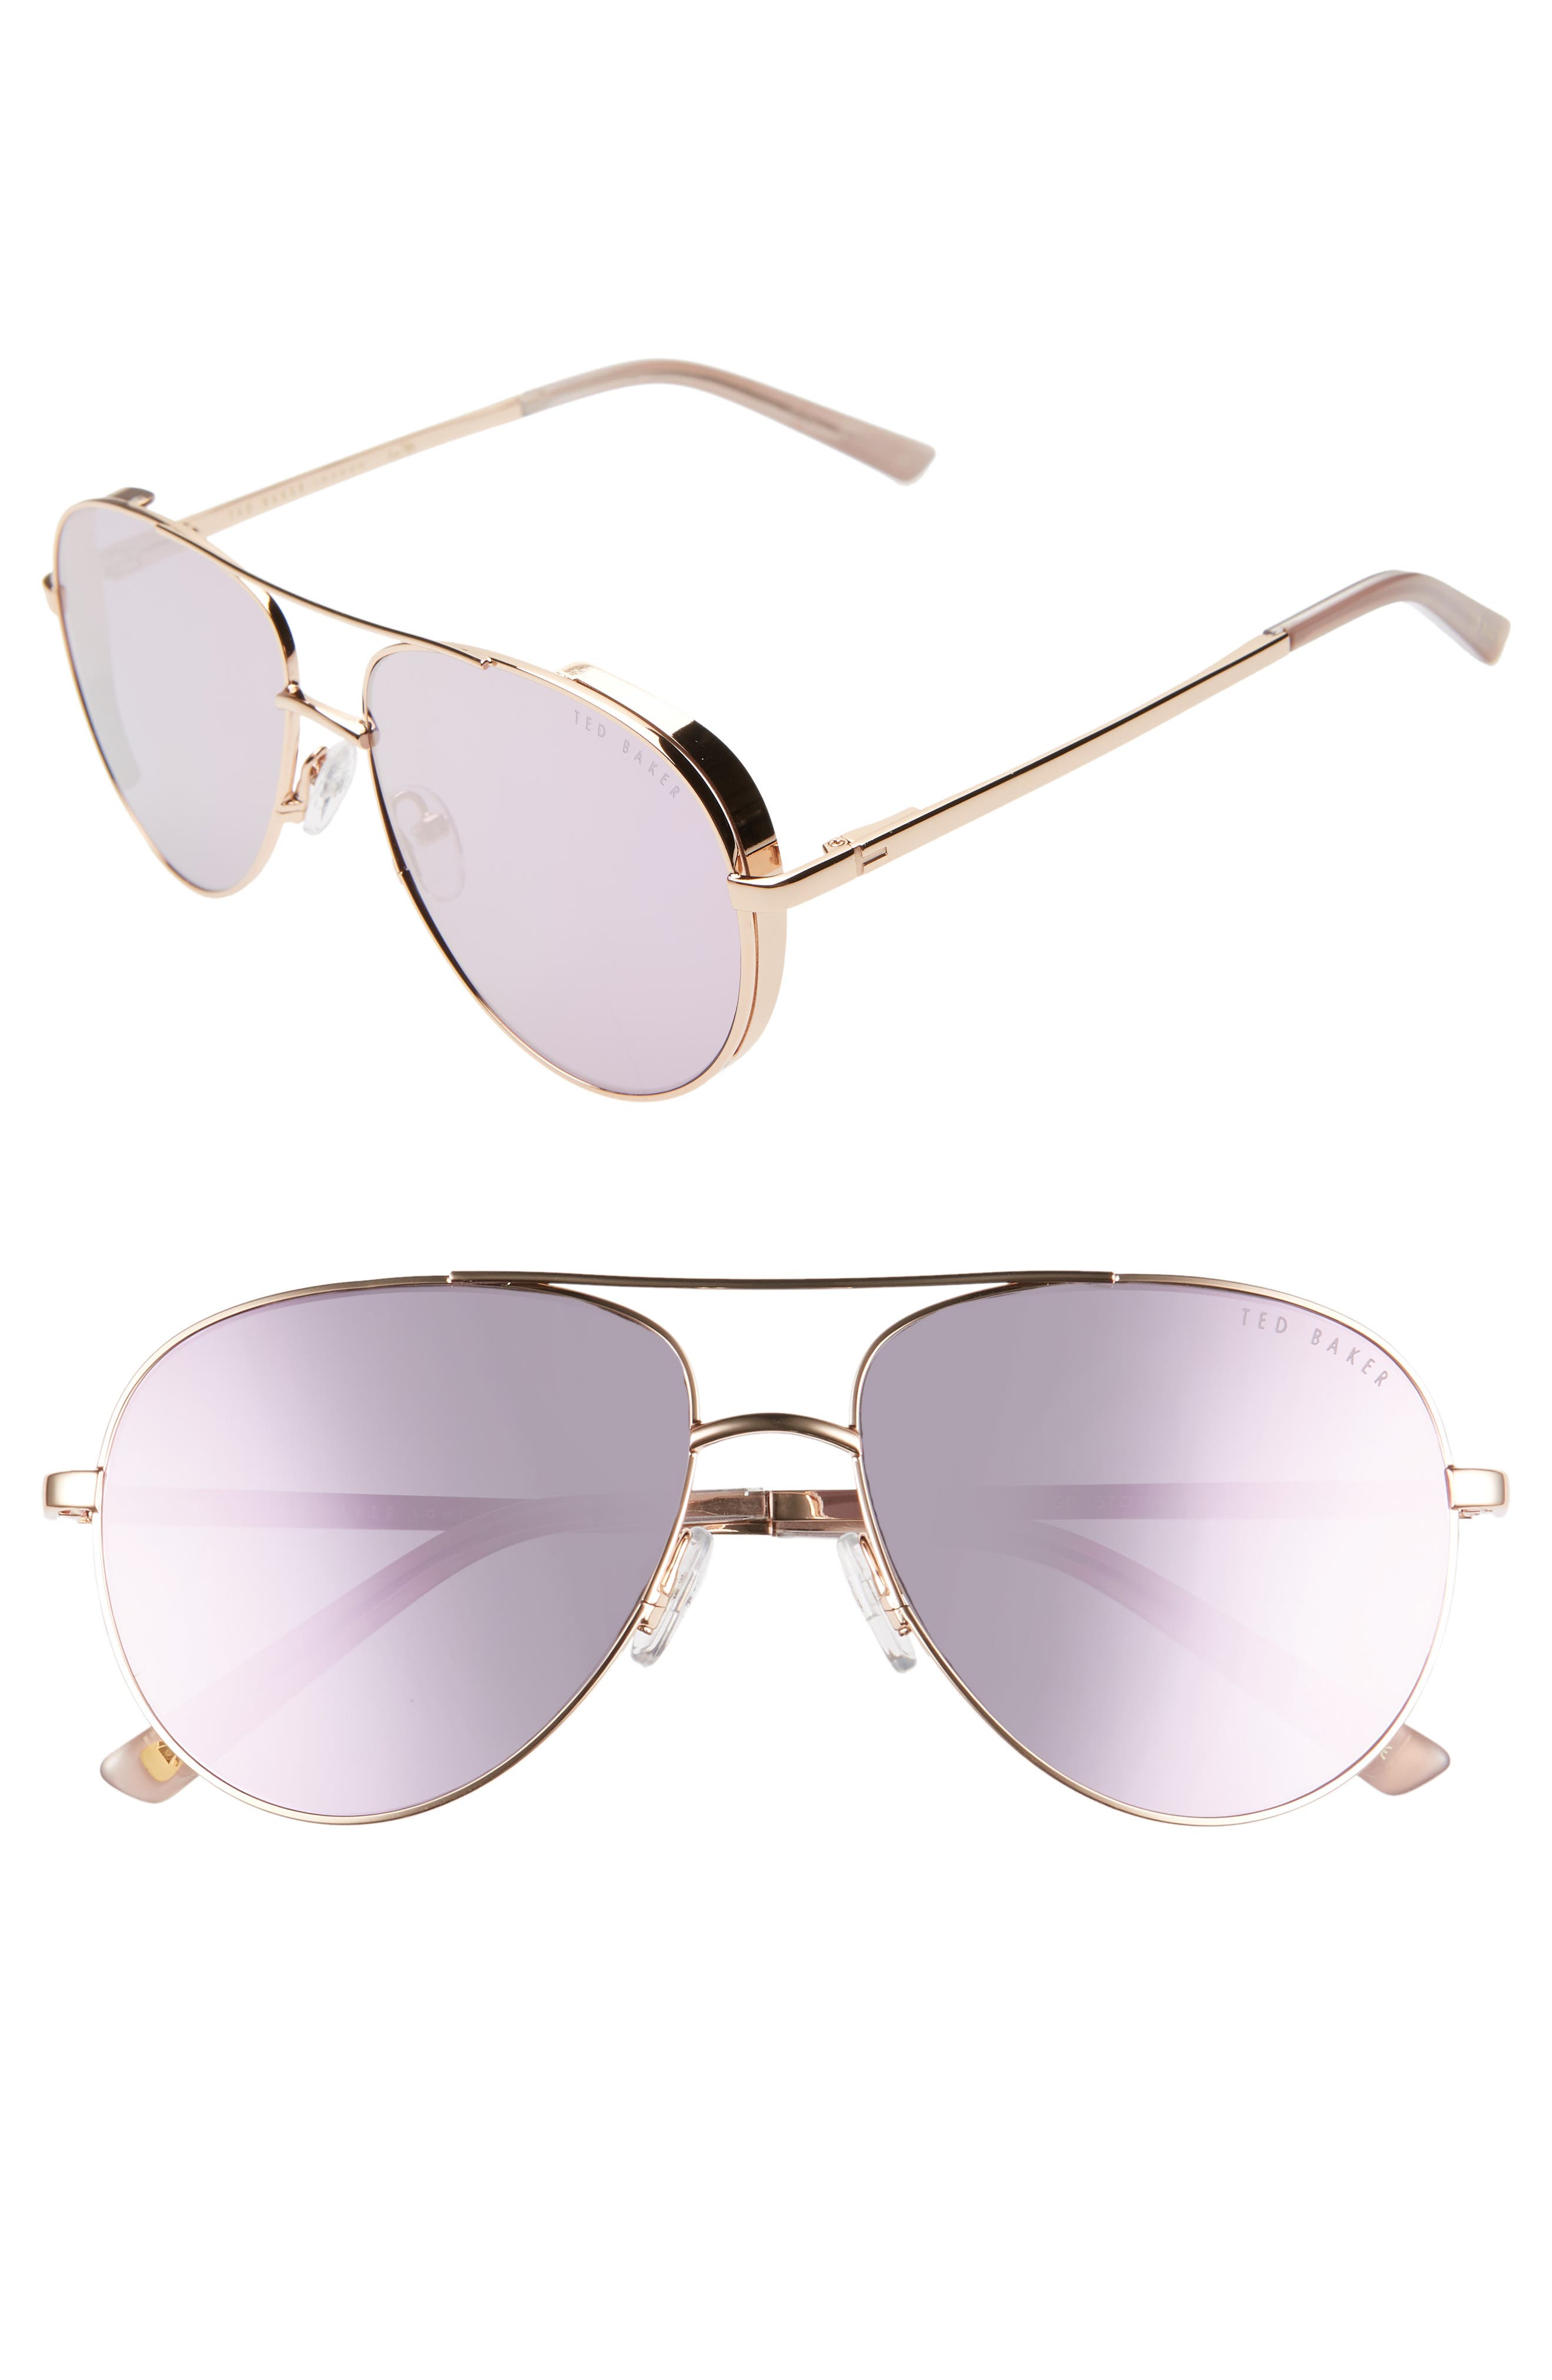 57mm Aviator Sunglasses, Main, color, GOLD/ ROSE GOLD